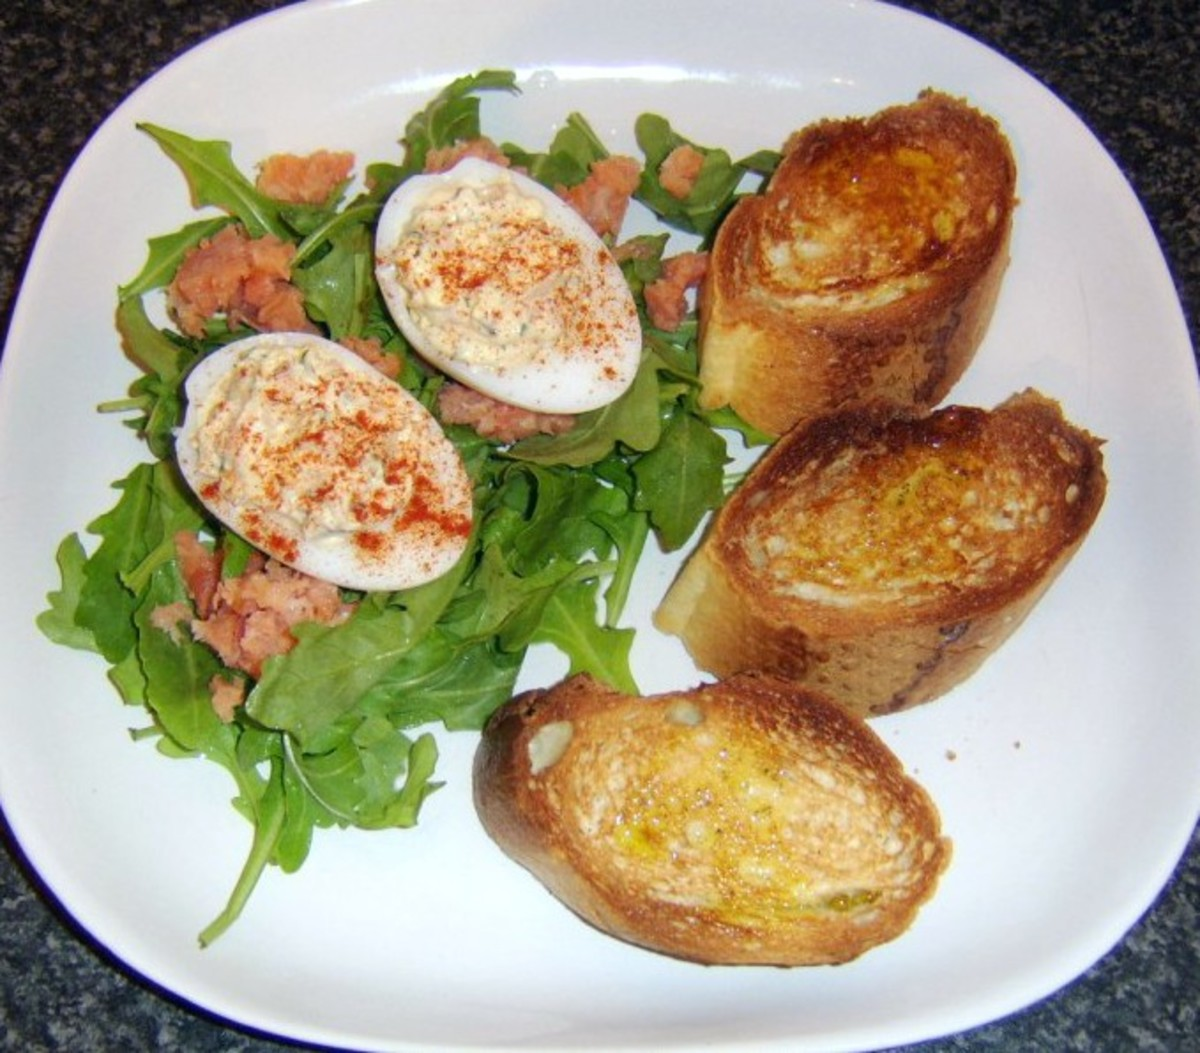 Smoked salmon is used in the deviled eggs as well as in the salad, all served with bruschetta